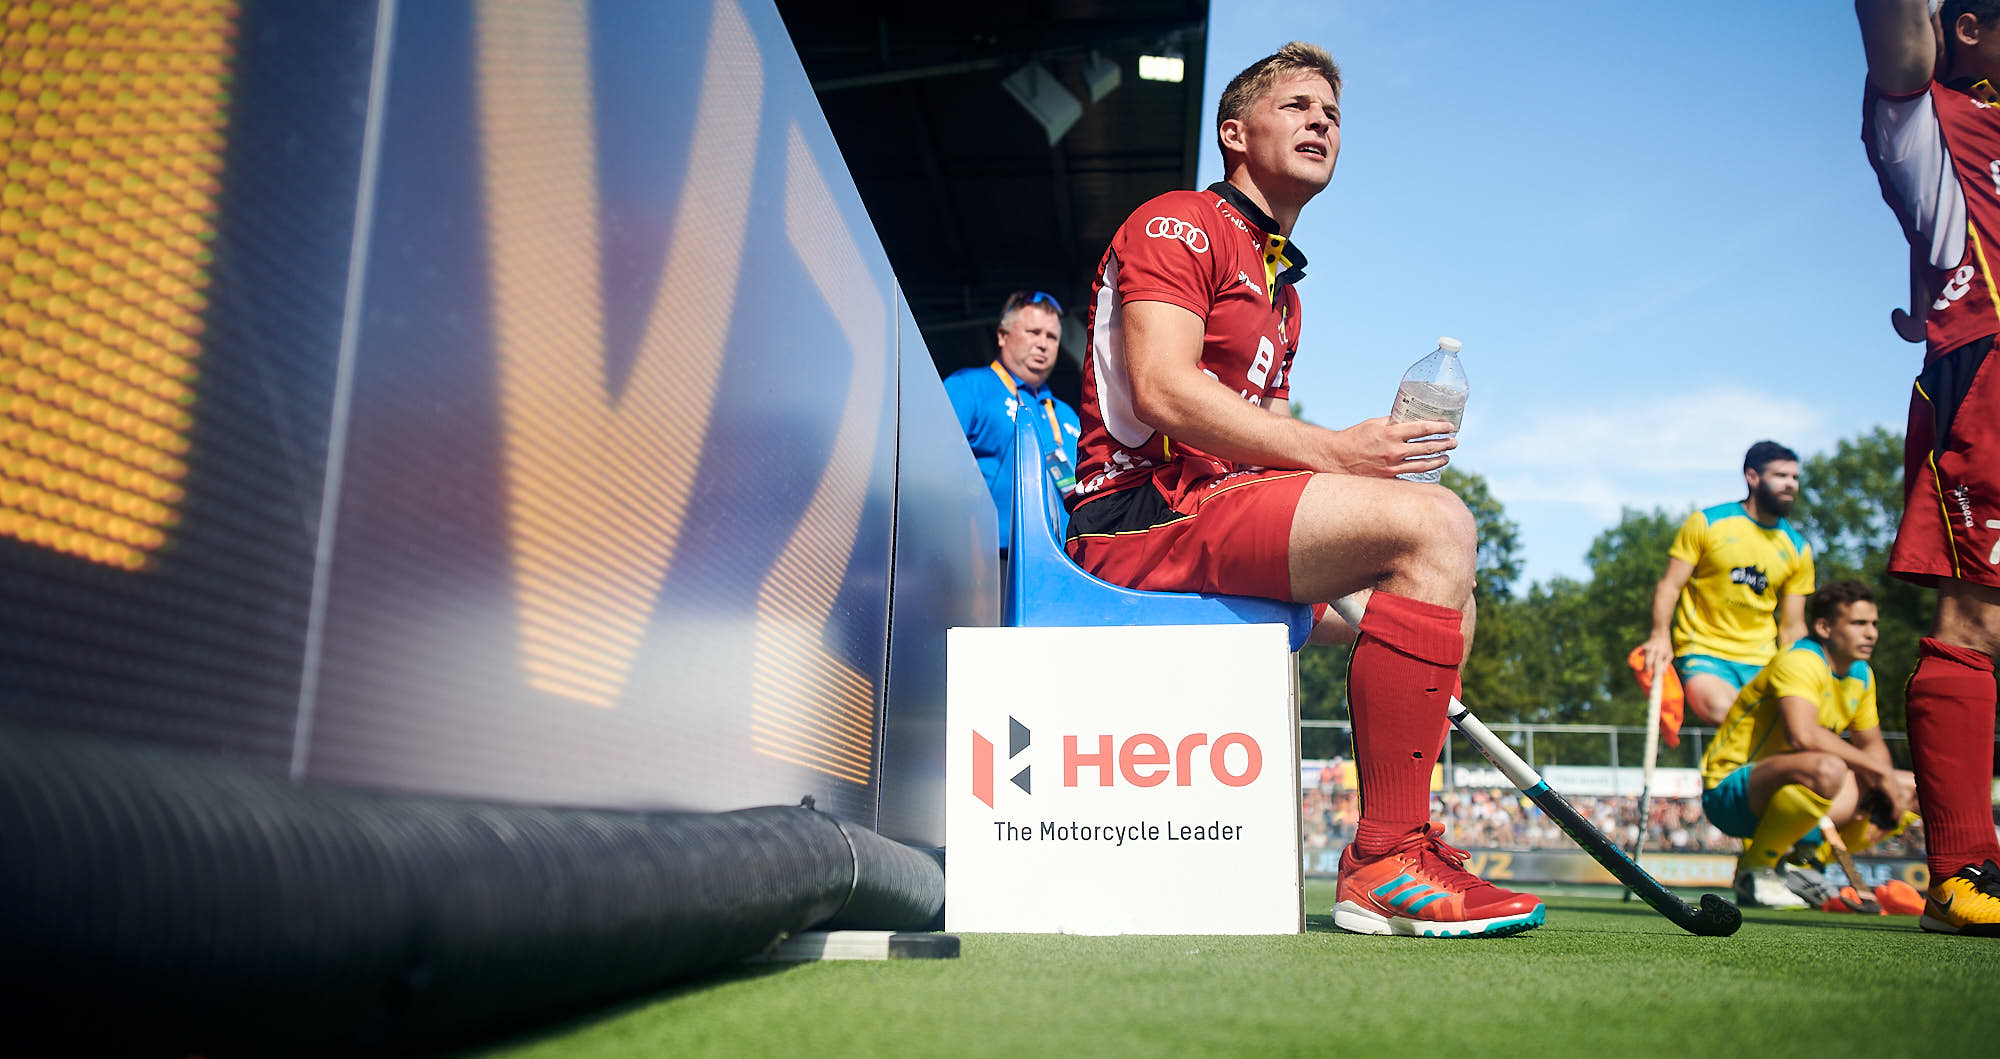 Belgium national hockey team benched for a foul during the 2019 FIH Pro League Finals in Amsterdam